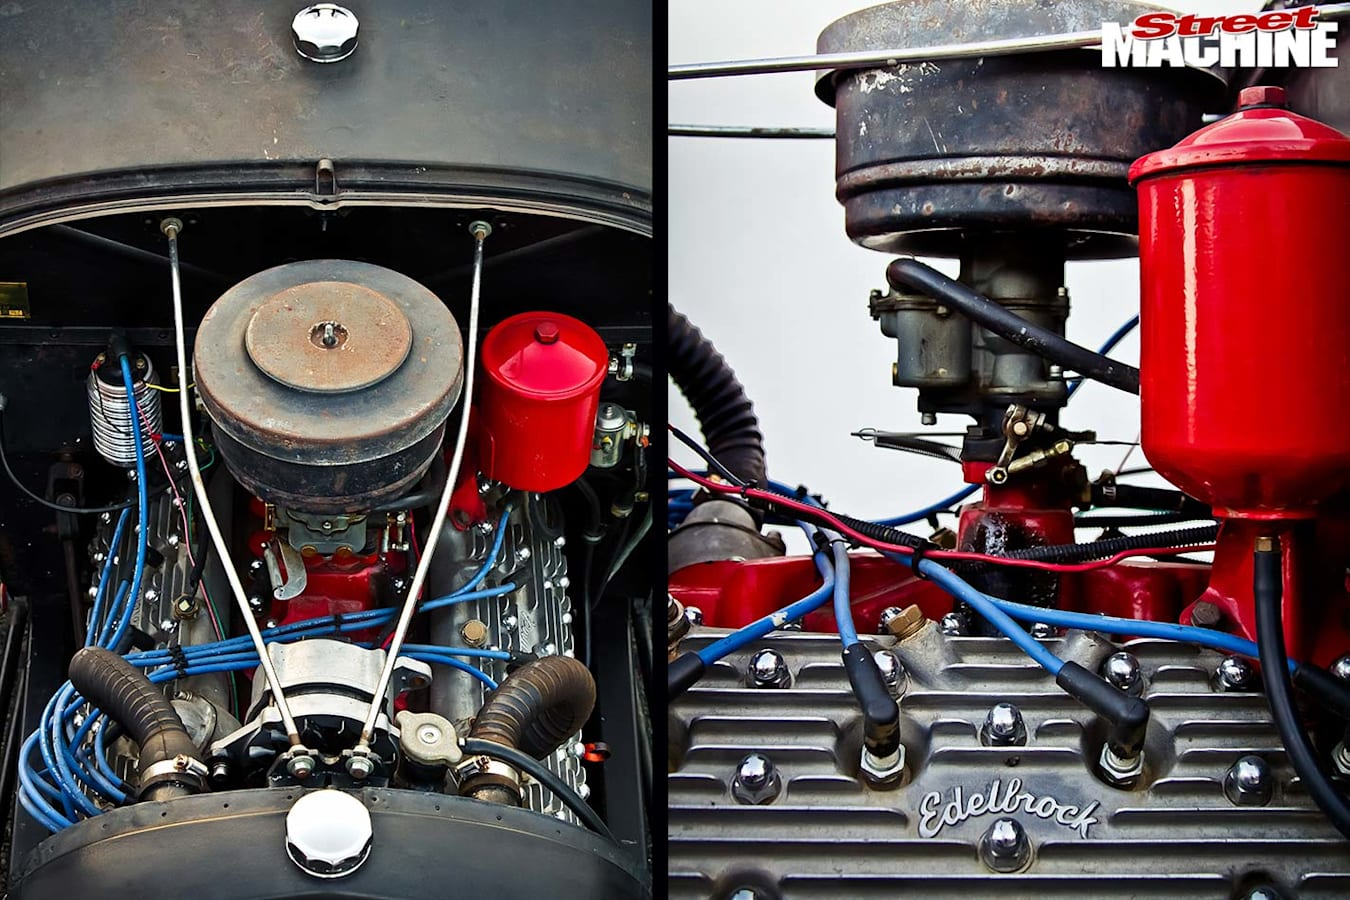 Ford Model A roadster engine